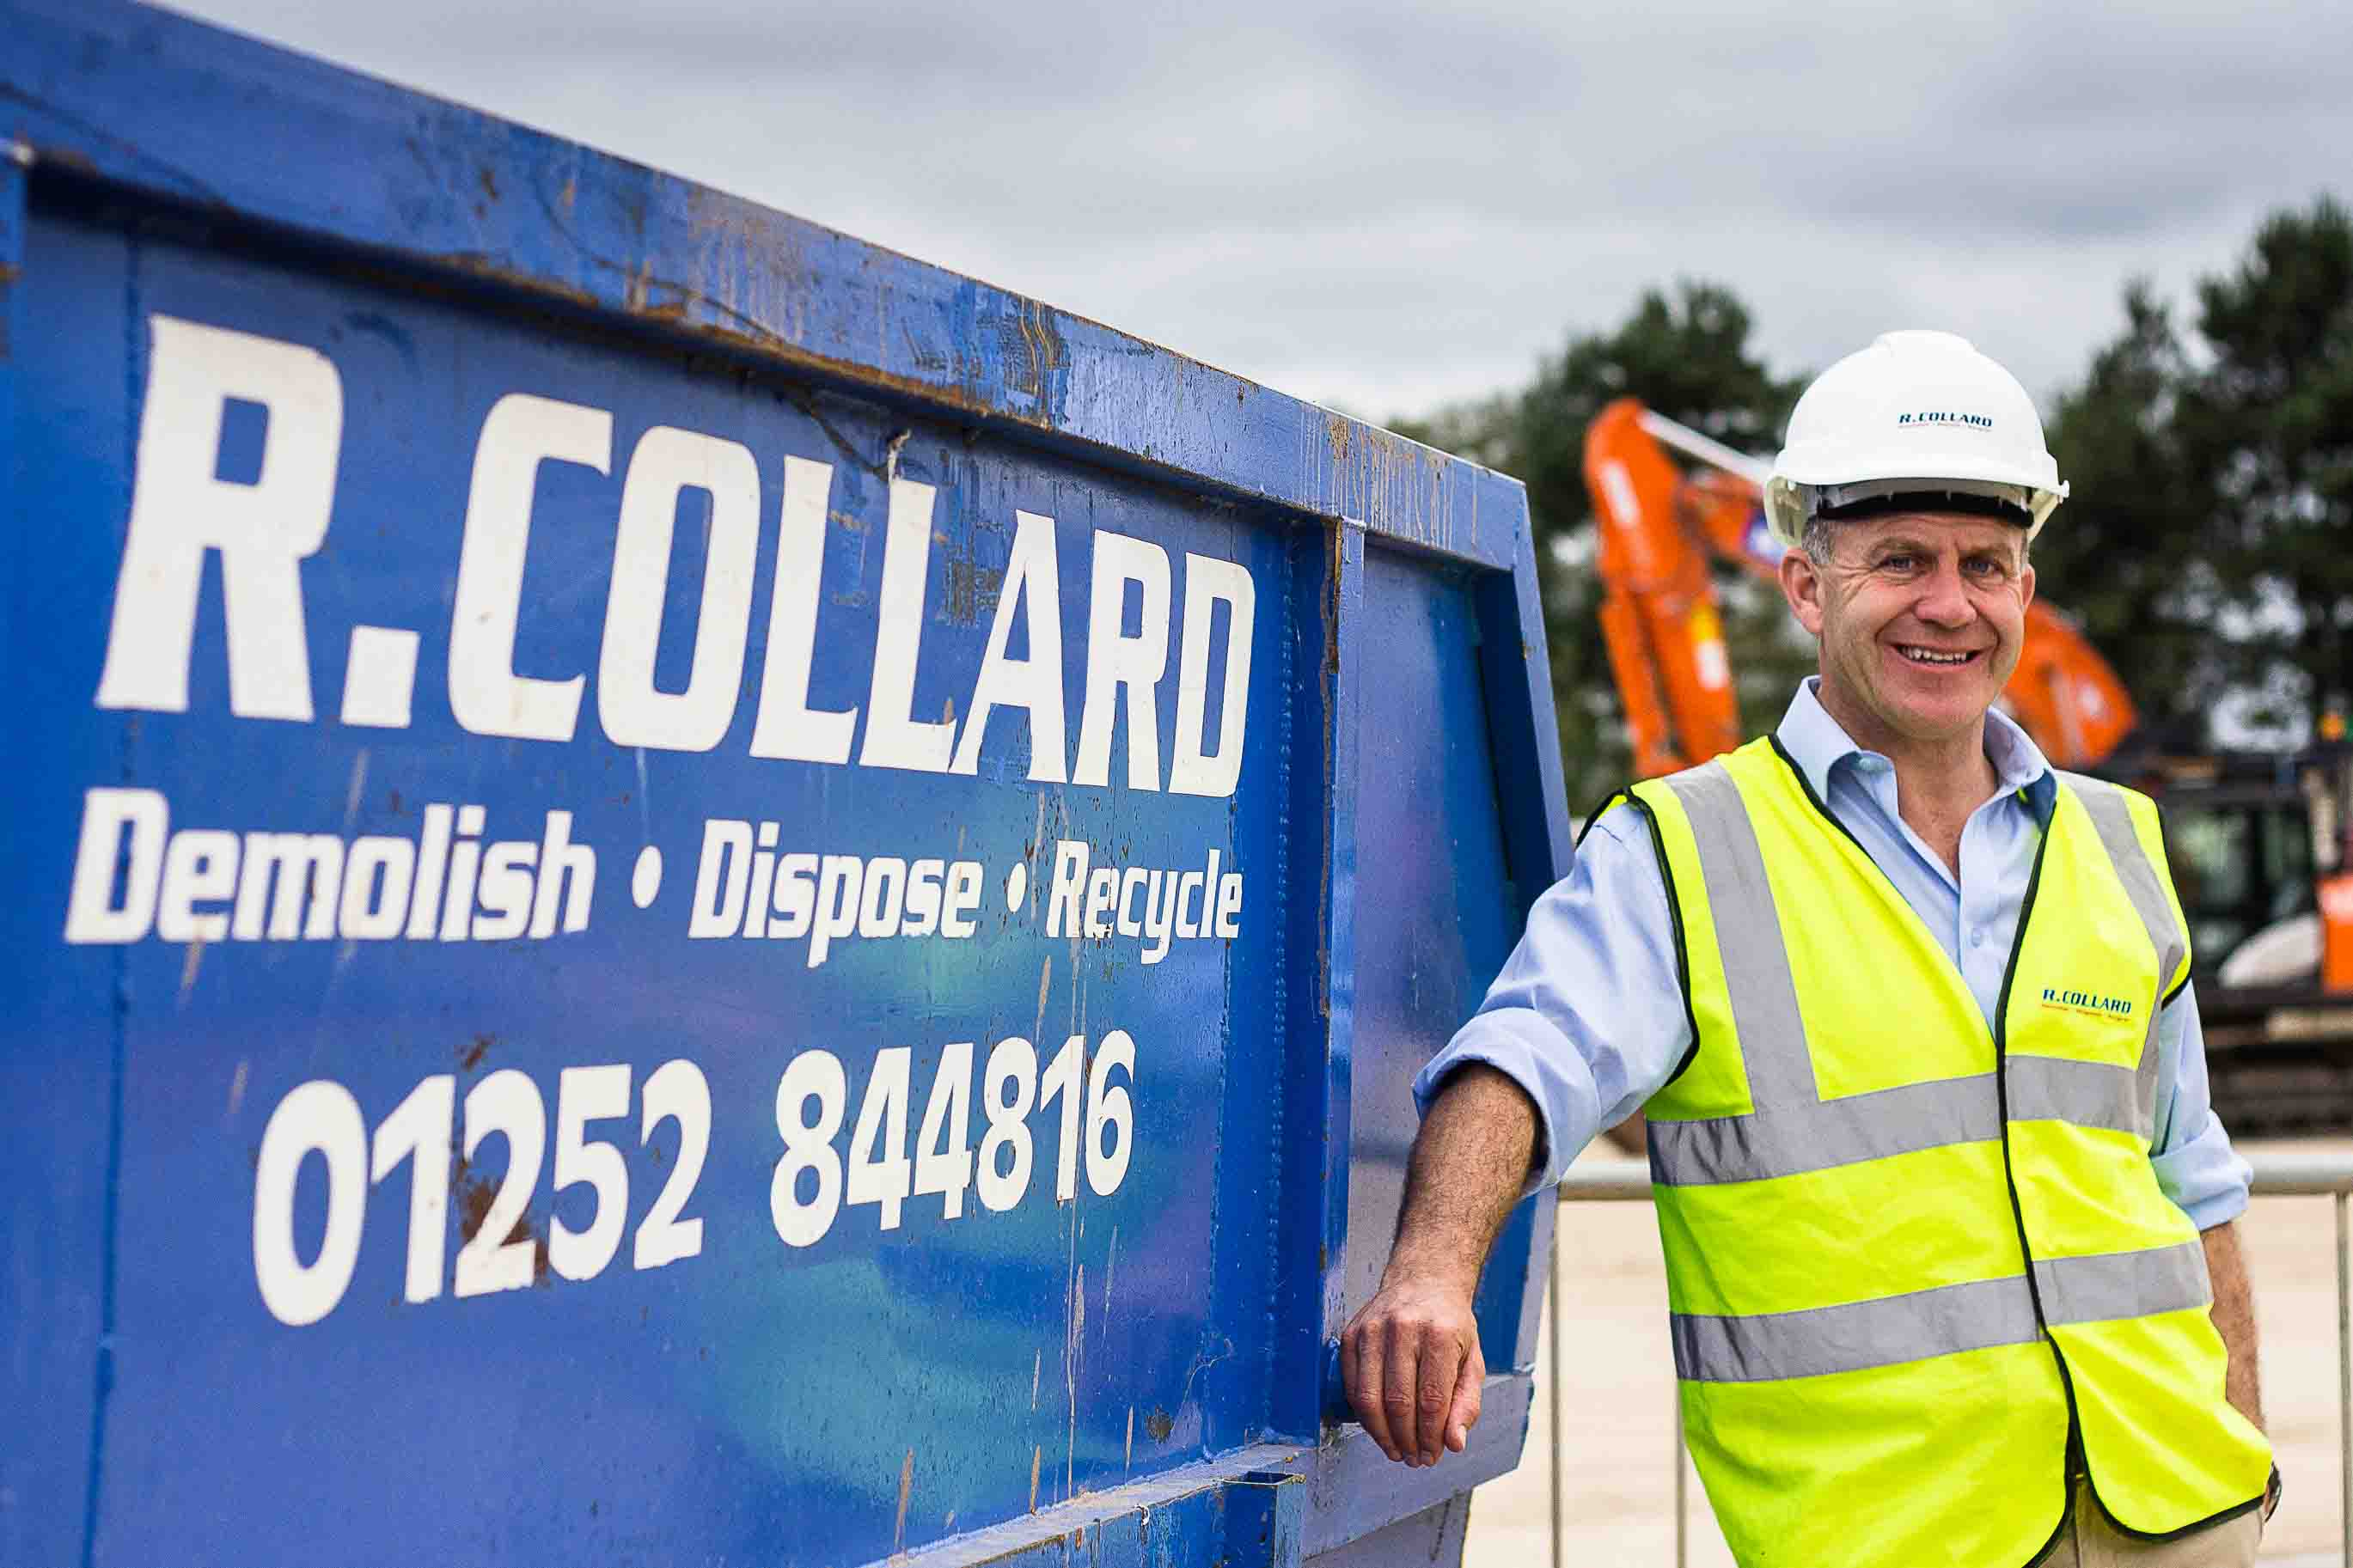 A man in a hurry – Rob Collard takes the fast route to success